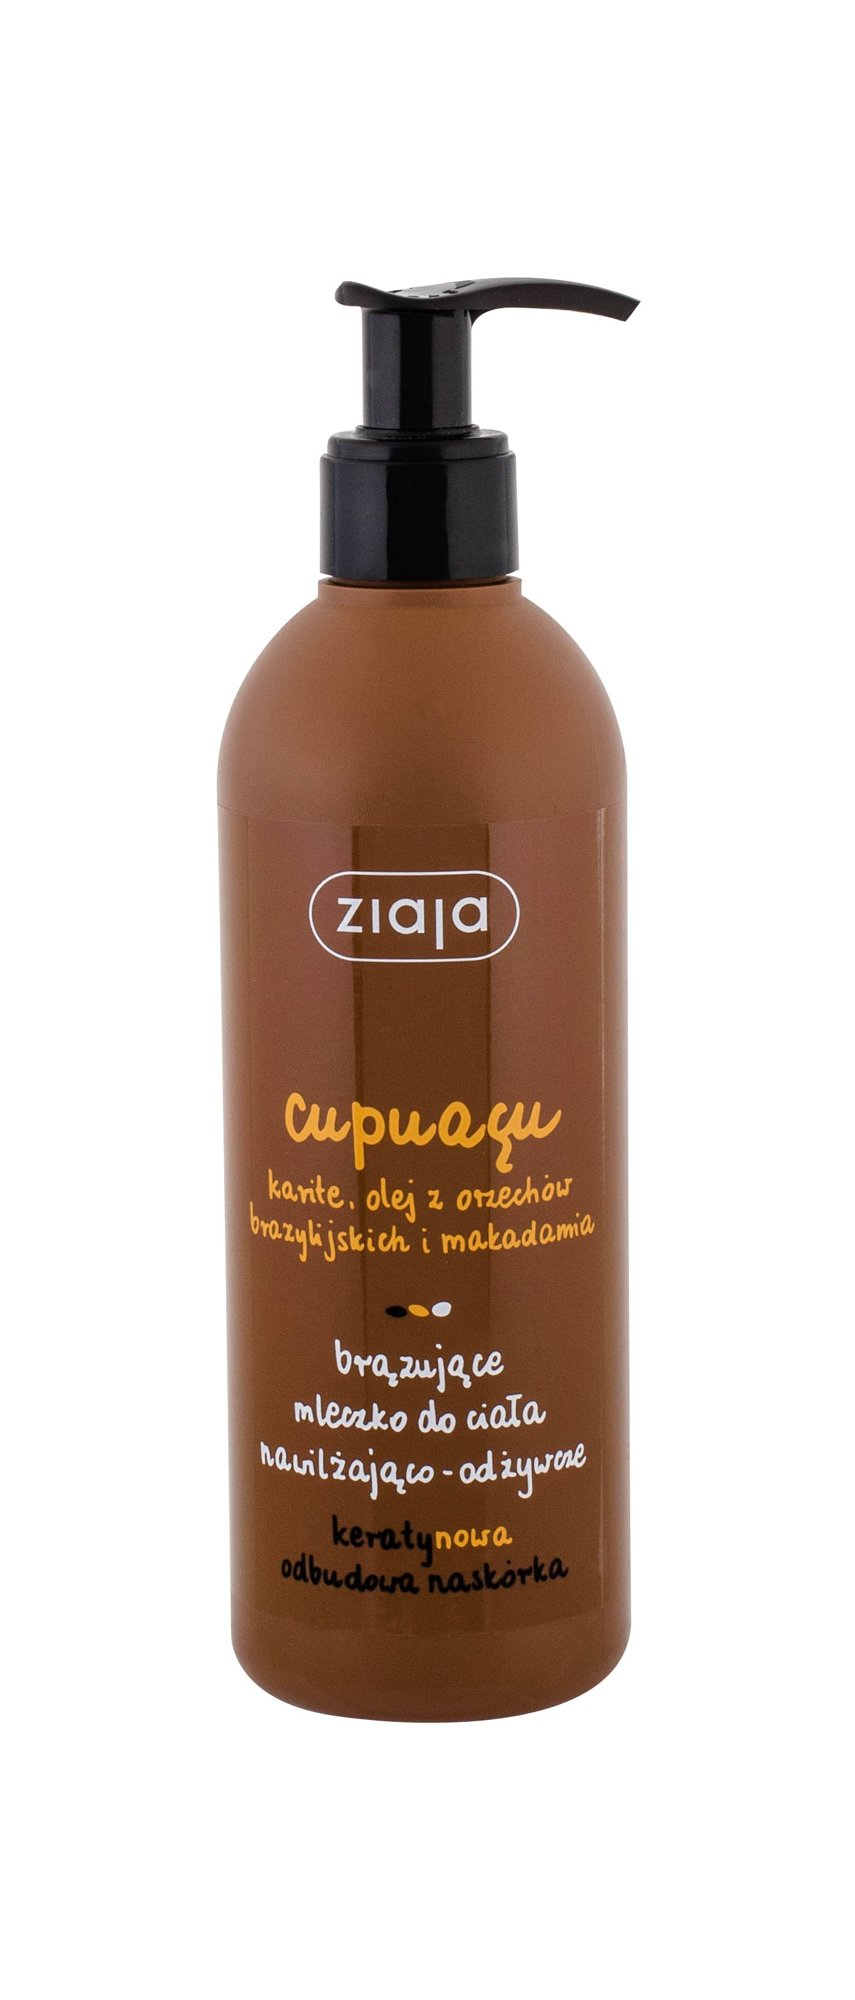 Ziaja Cupuacu Body Lotion 300ml